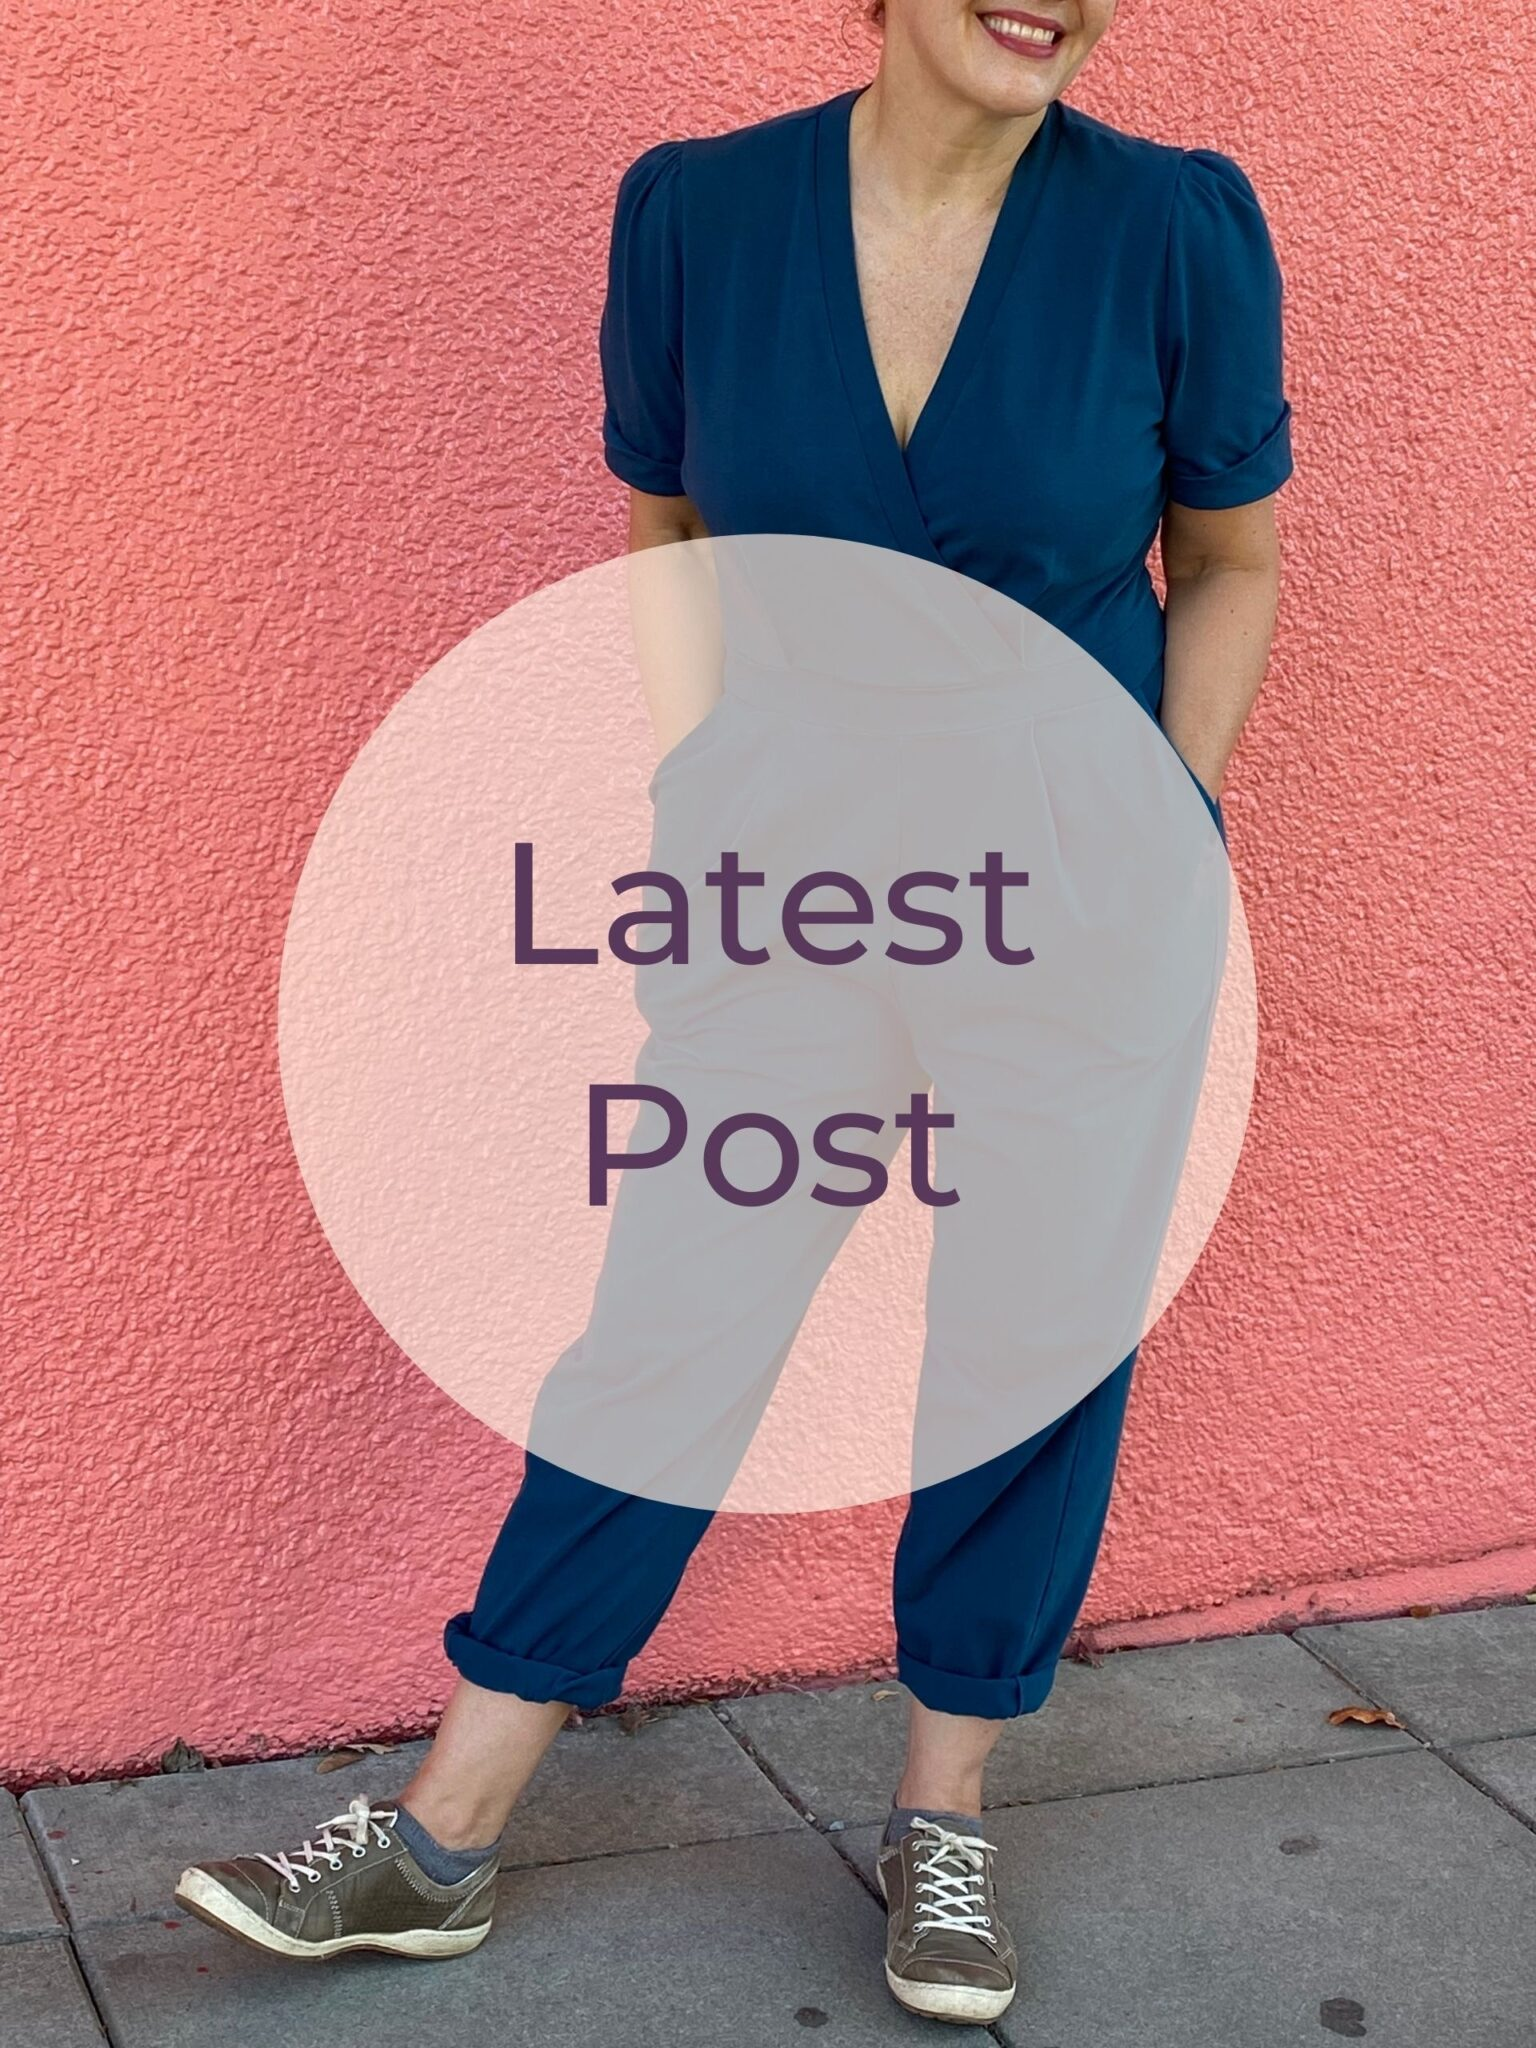 A white woman stands in front of a salmon pink wall wearing a teal jumpsuit. A pink circle with text reading latest post is superimposed.